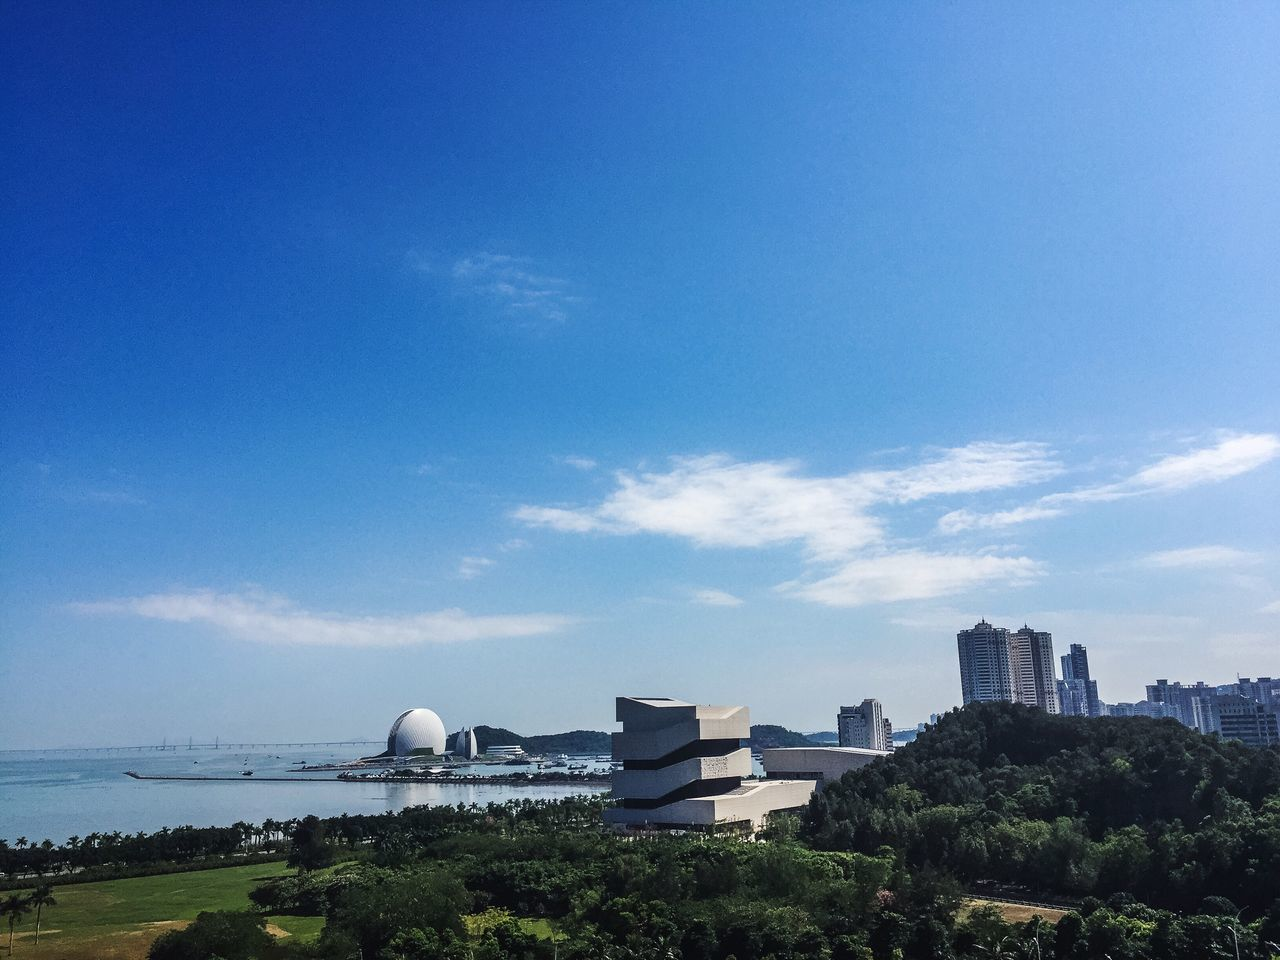 Architecture Building Exterior Built Structure City Sky Blue Travel Destinations No People Outdoors Cityscape Day Urban Skyline Nature Sea Shell Shell Zhuhai Museum Zhuhai Opera Zhuhai Opéra